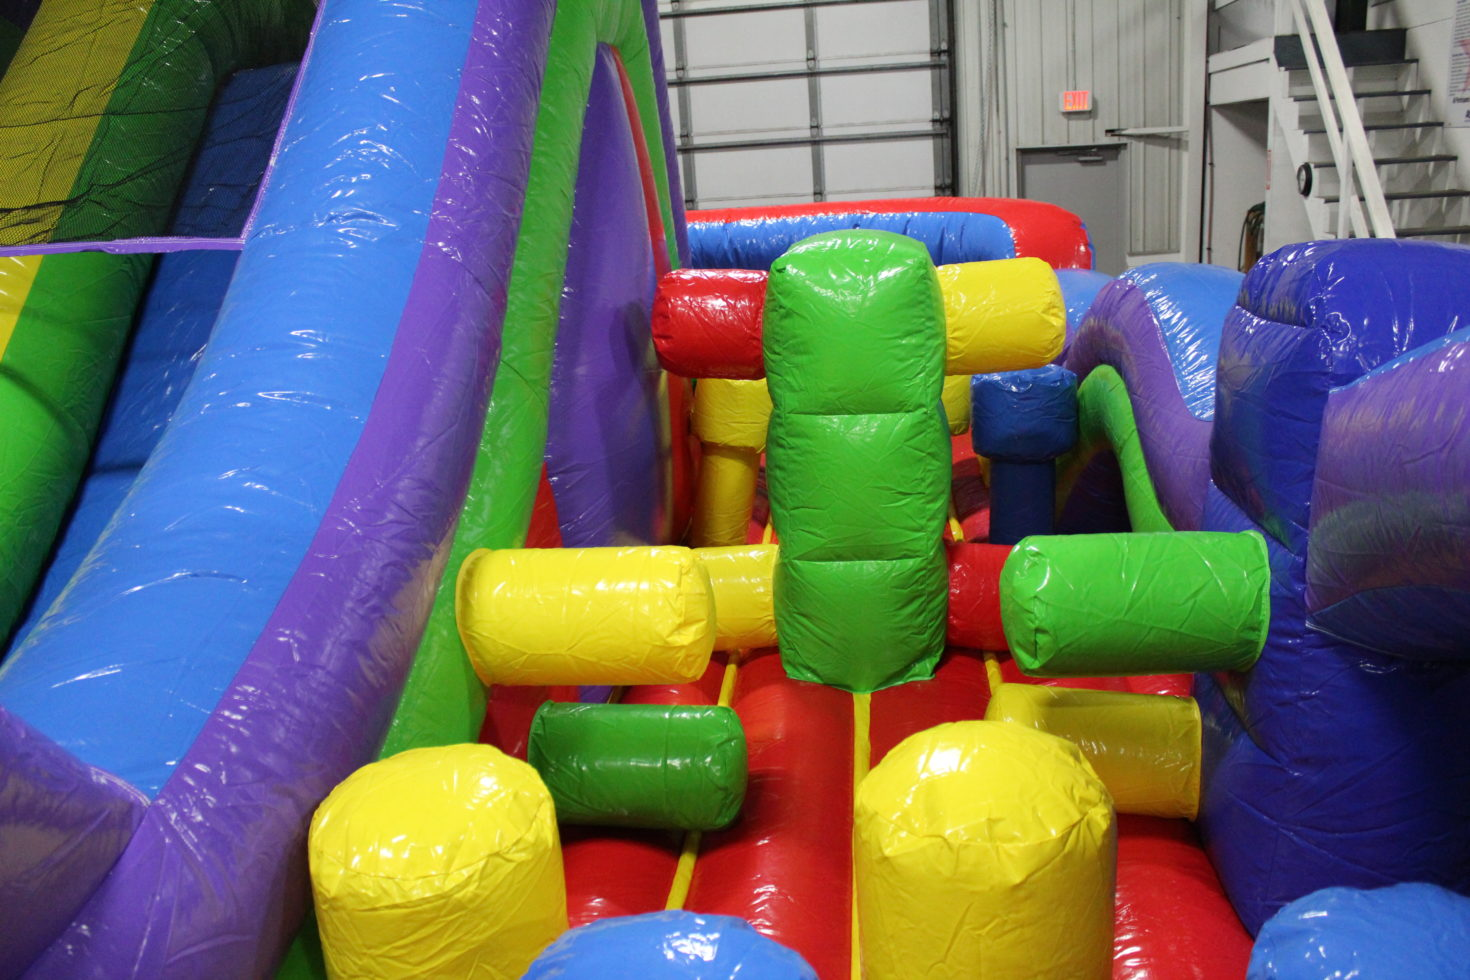 Inside DoubleBack Obstacle course